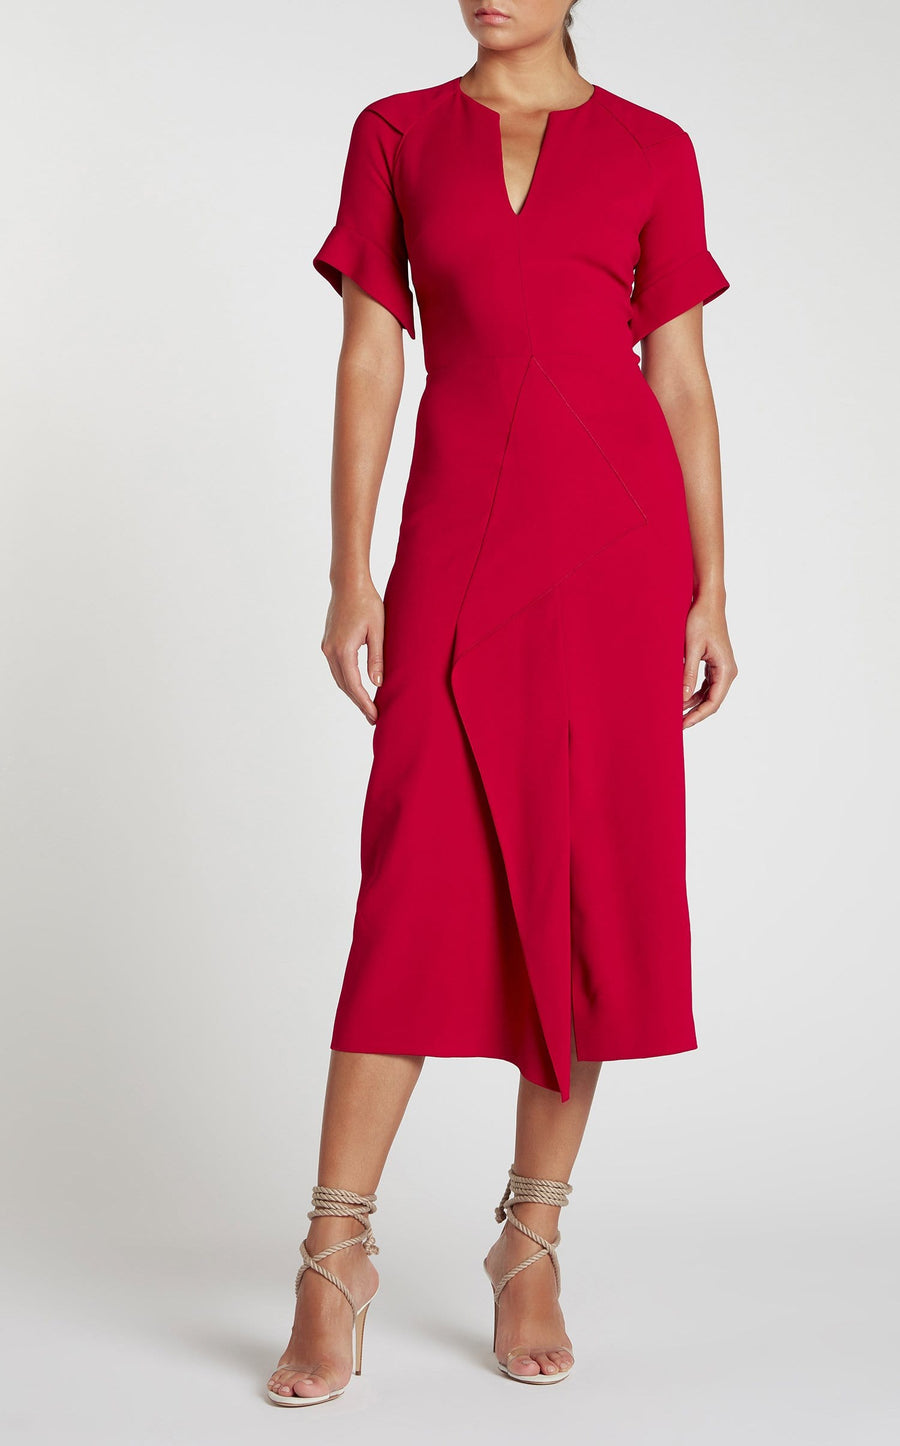 Tresta Dress In Ruby from Roland Mouret